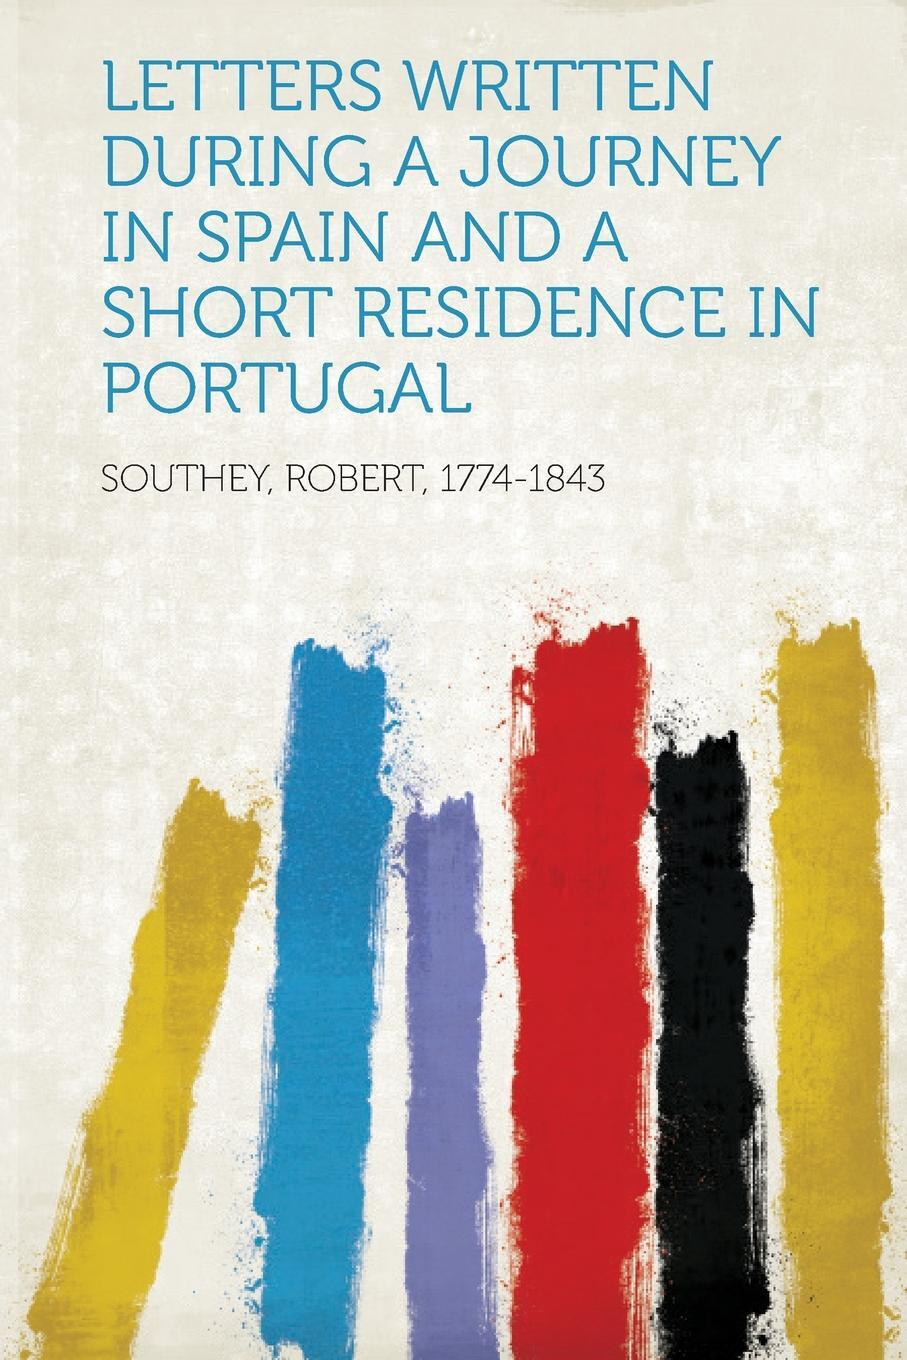 Robert Southey. Letters Written During a Journey in Spain and a Short Residence in Portugal